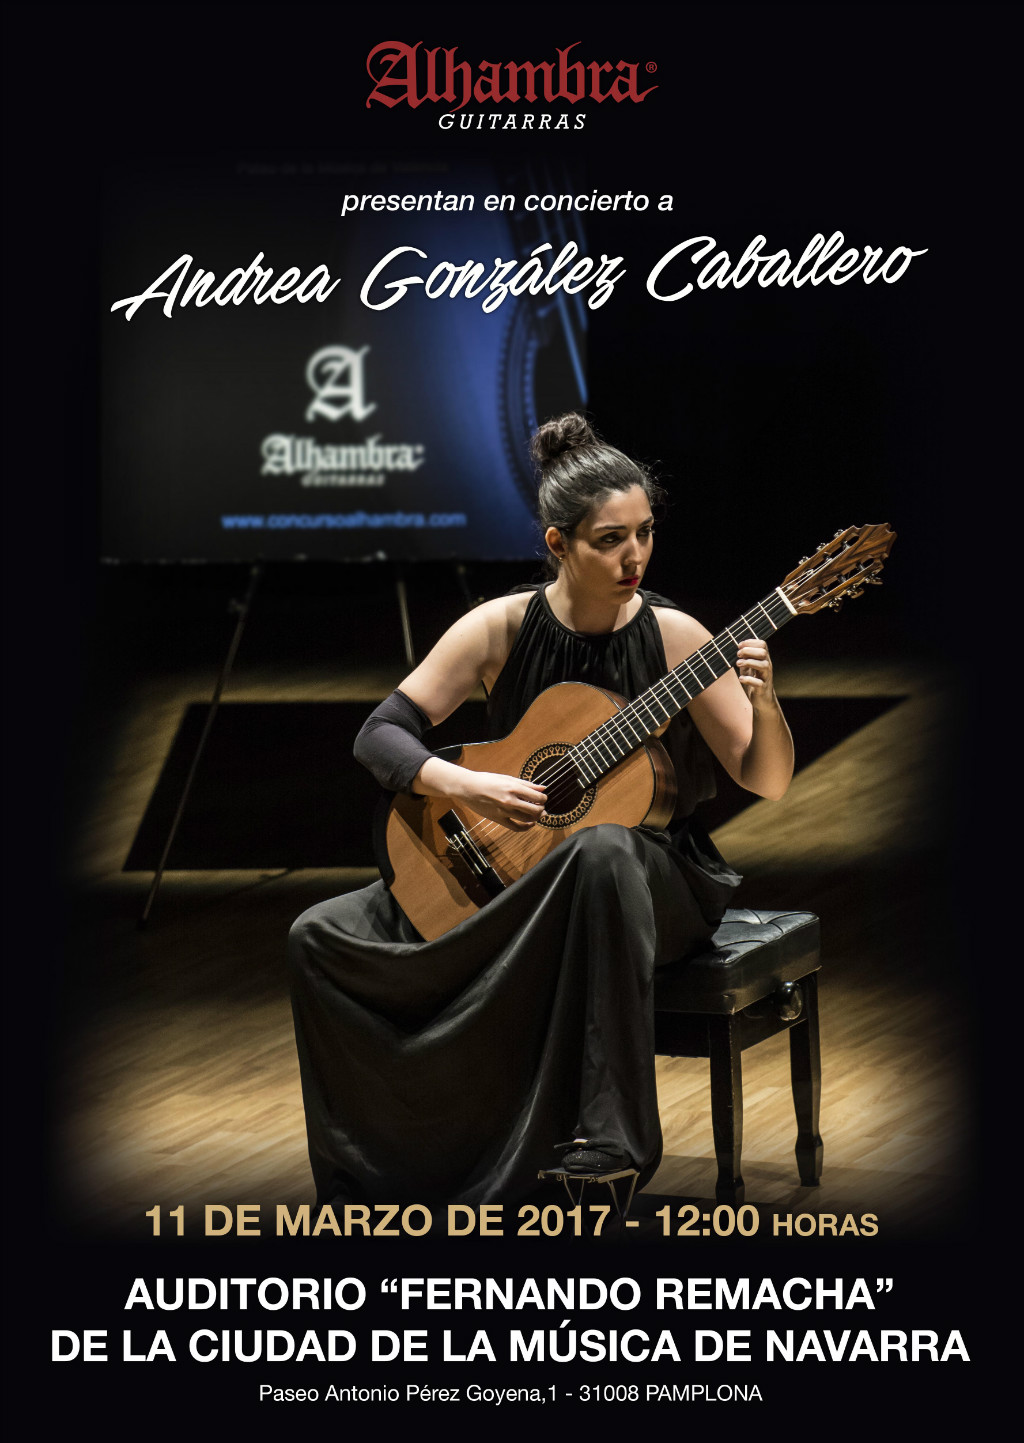 Concert and Master class by Andrea González in Pamplona